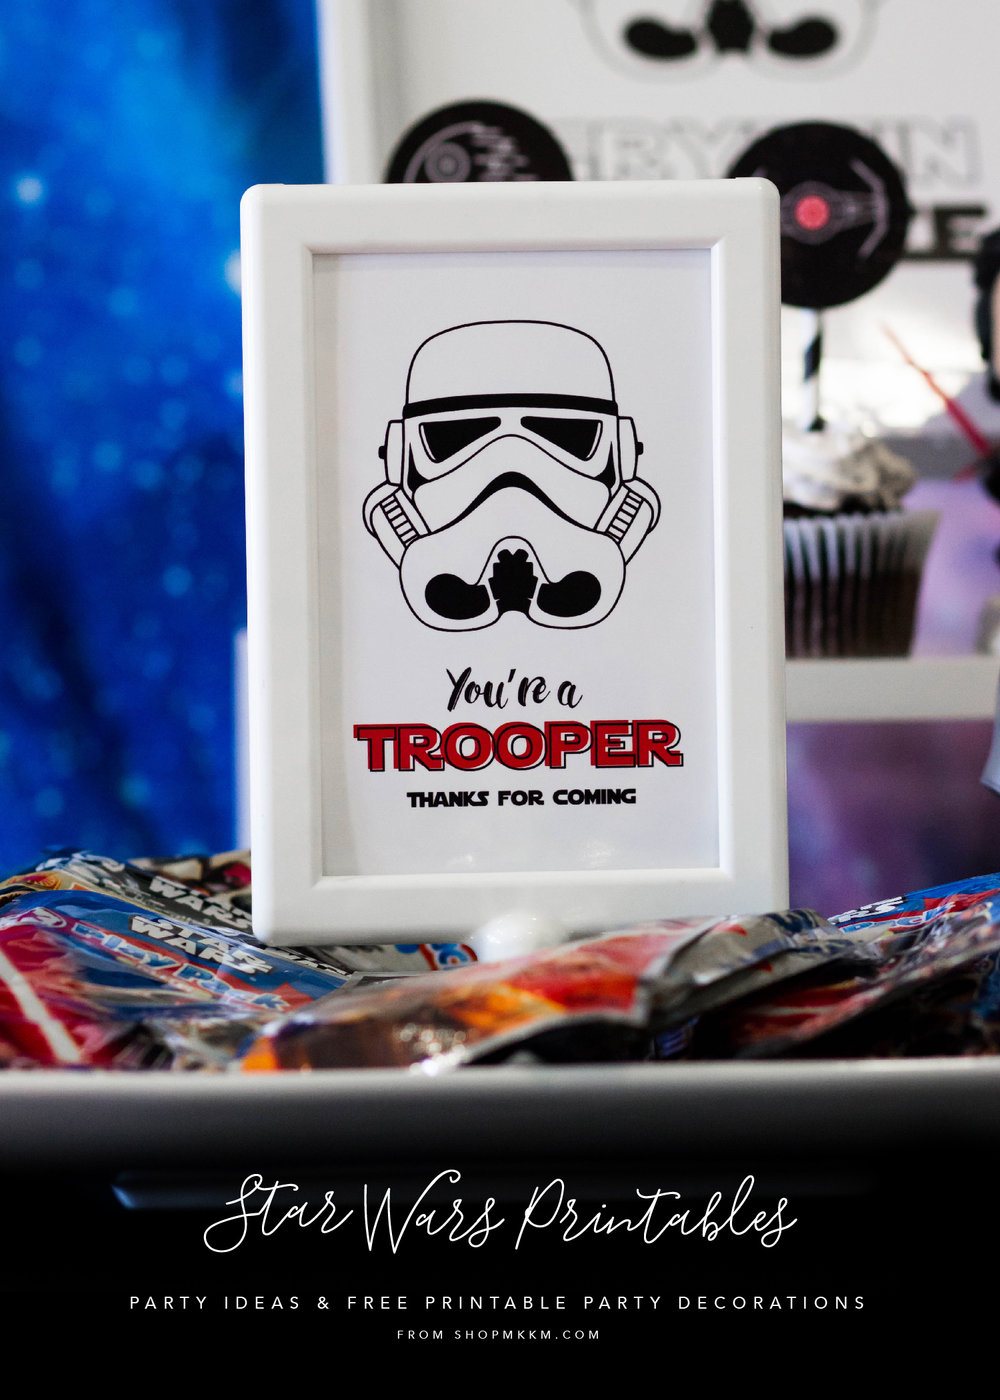 Star Wars Party Ideas and Free Printables by MKKM Designs